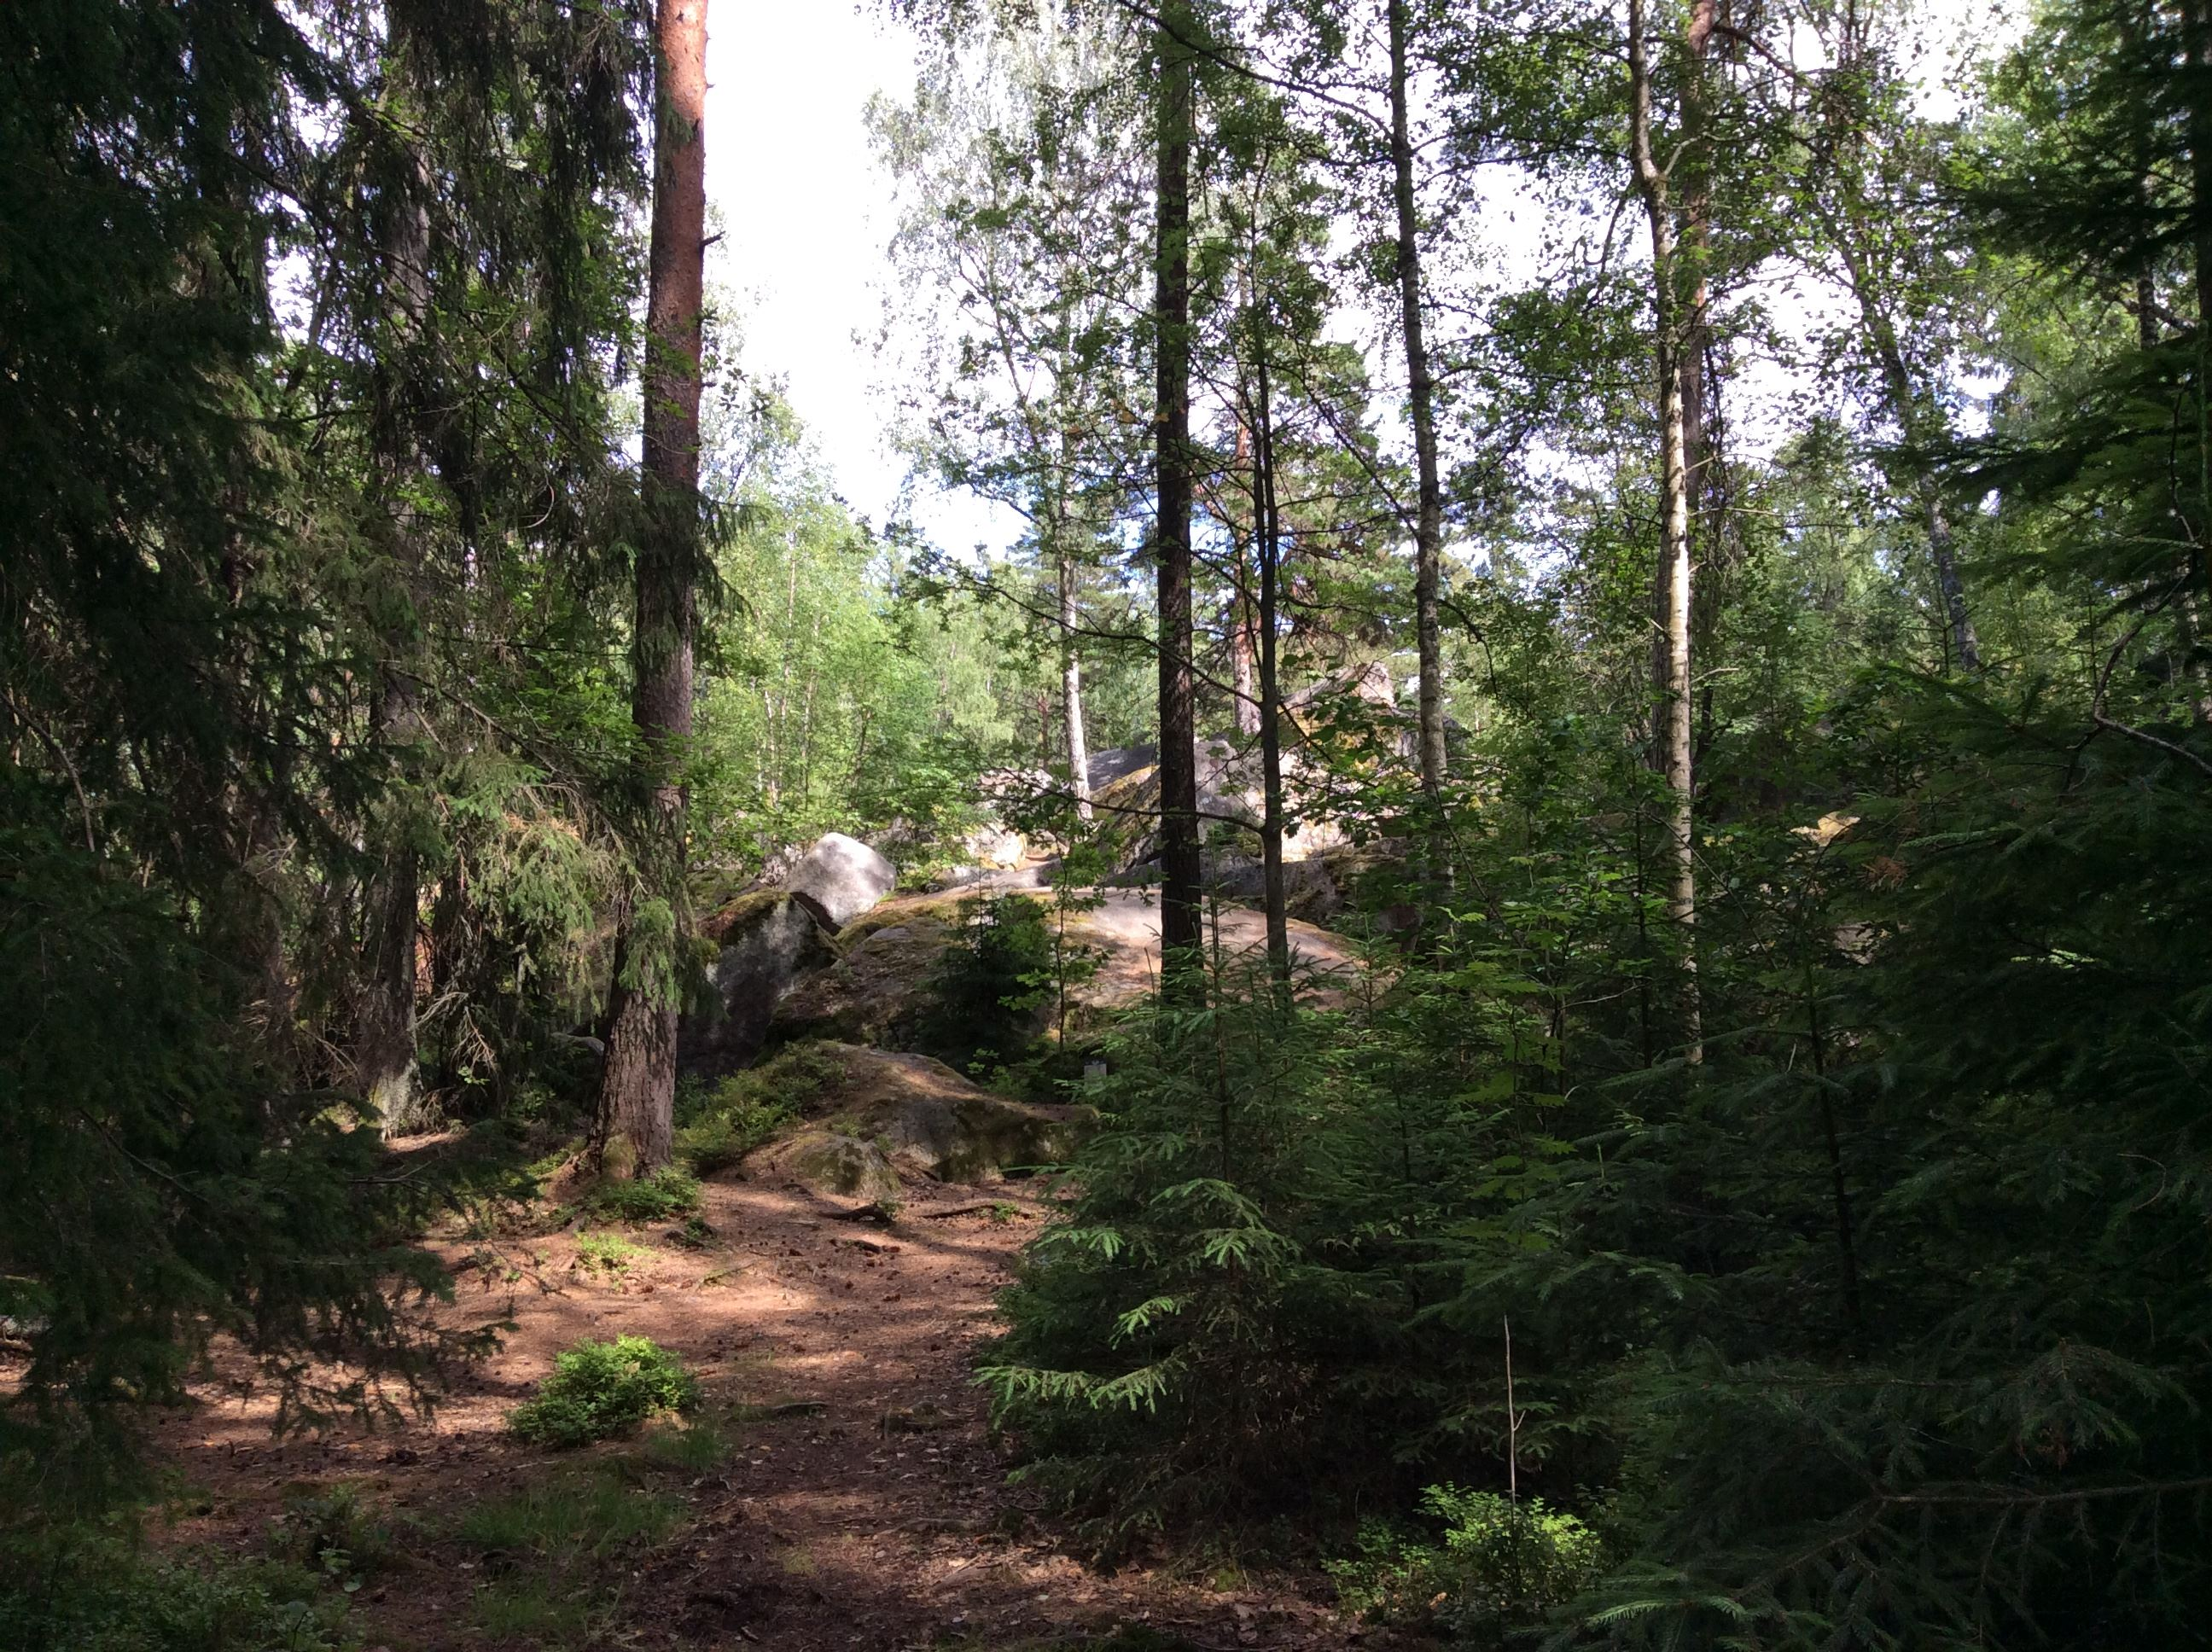 Torsås, Karnaberg- Nature's own adventure center